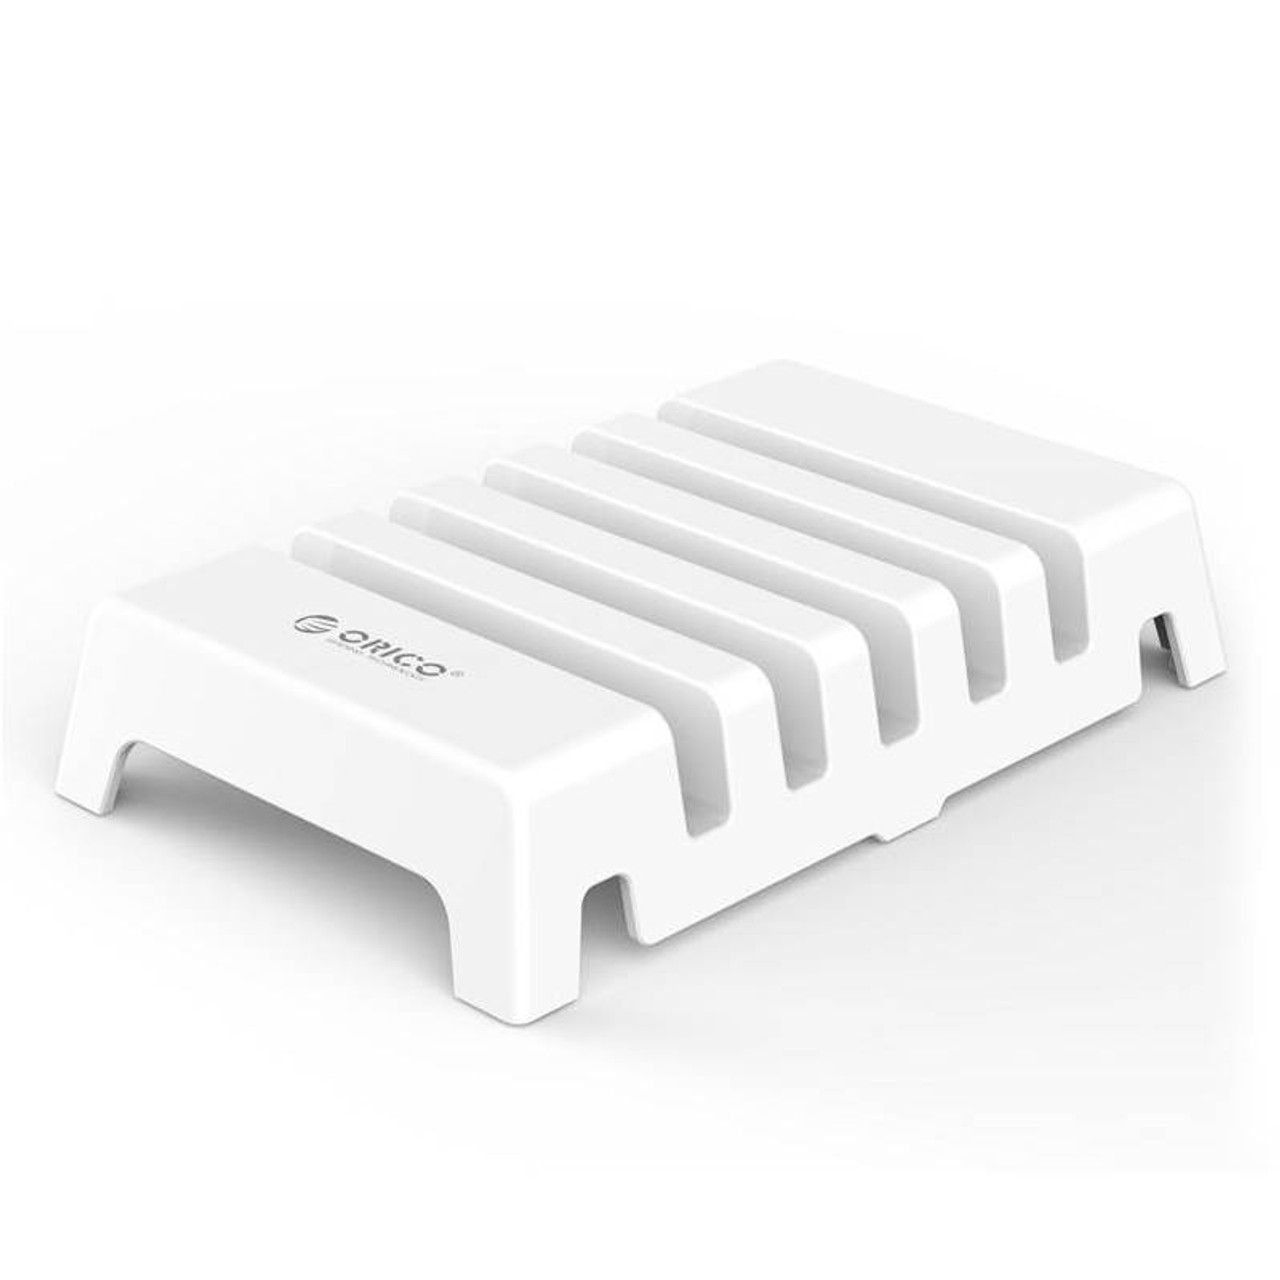 Image for Orico DK305 5 Slot Stand For Phones & Tablets - White CX Computer Superstore